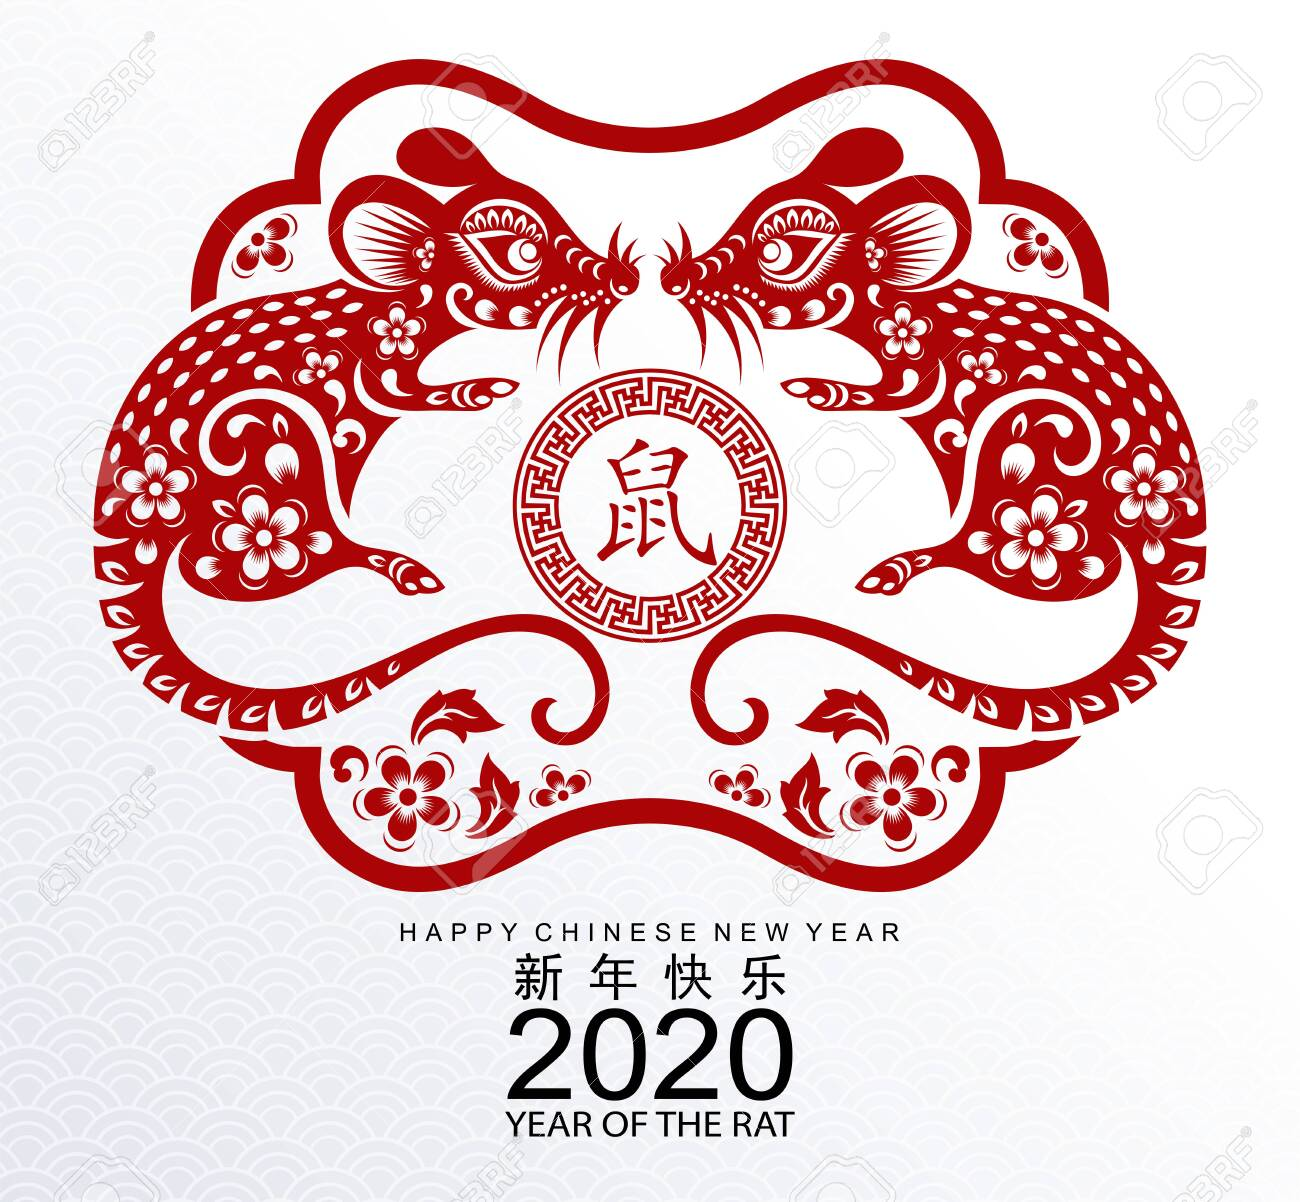 Happy Chinese New Year 2020 Year Of The Rat Paper Cut Rat Characterflower